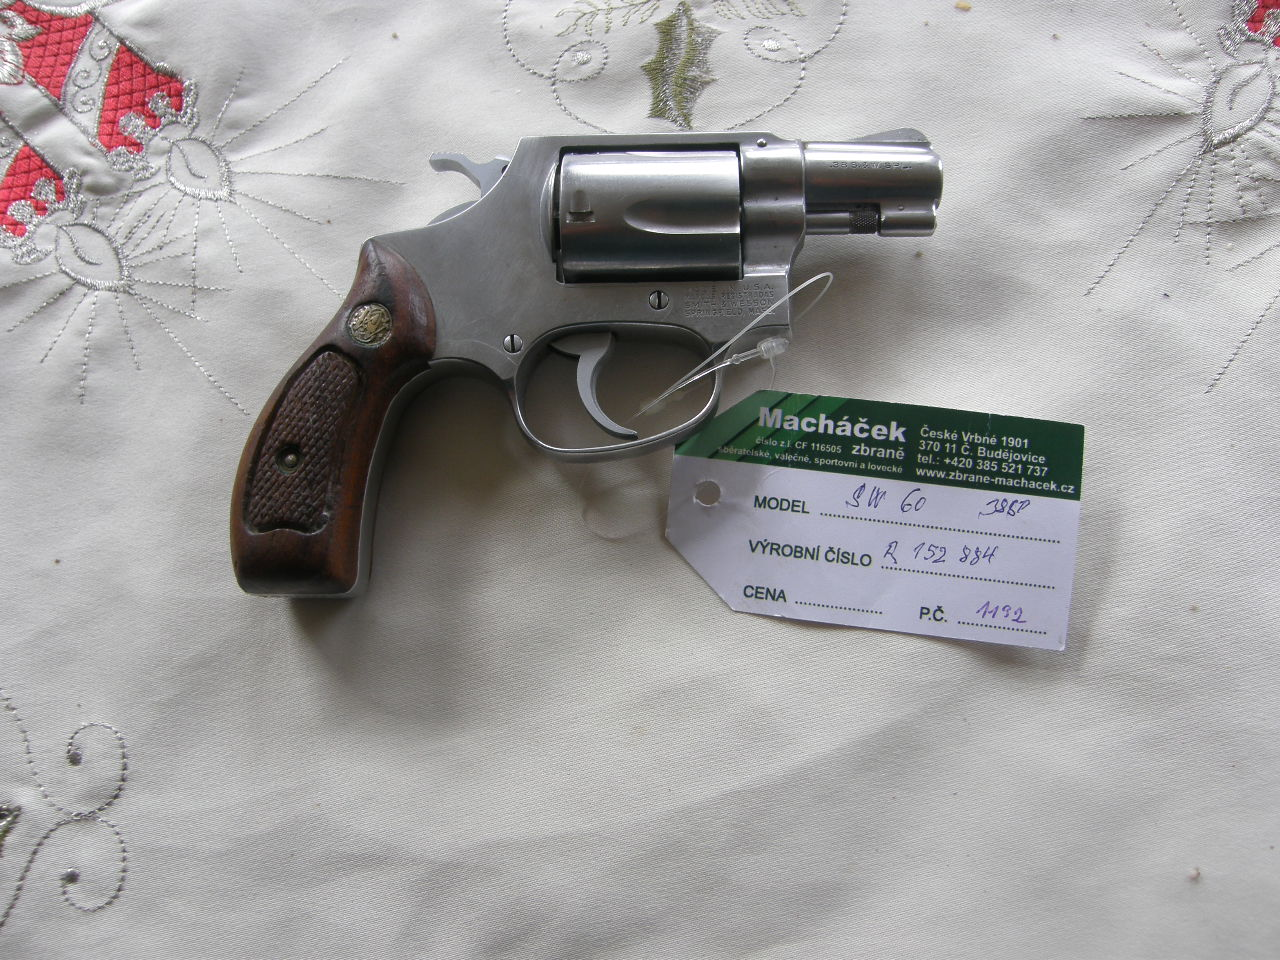 Revolver Smith Wesson Mod 60 v.č.R 152884 r. 38 Sp.